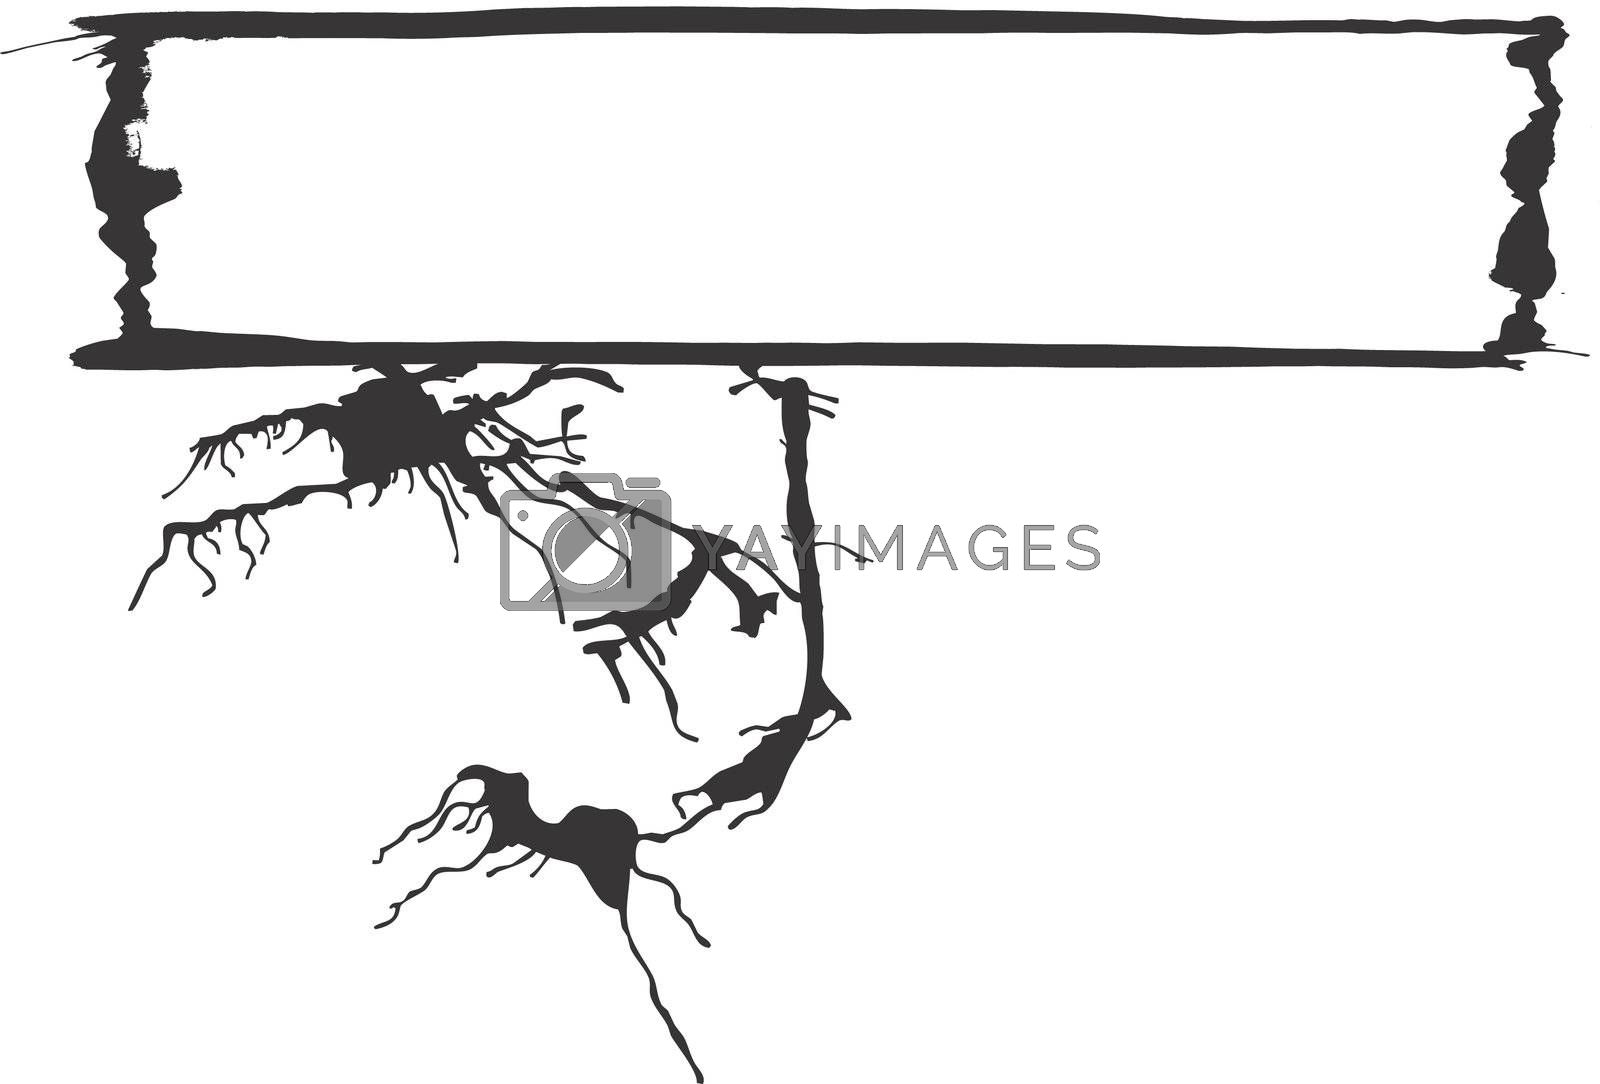 Abstract expressionist banner space with spilled ink designs. Space for text.